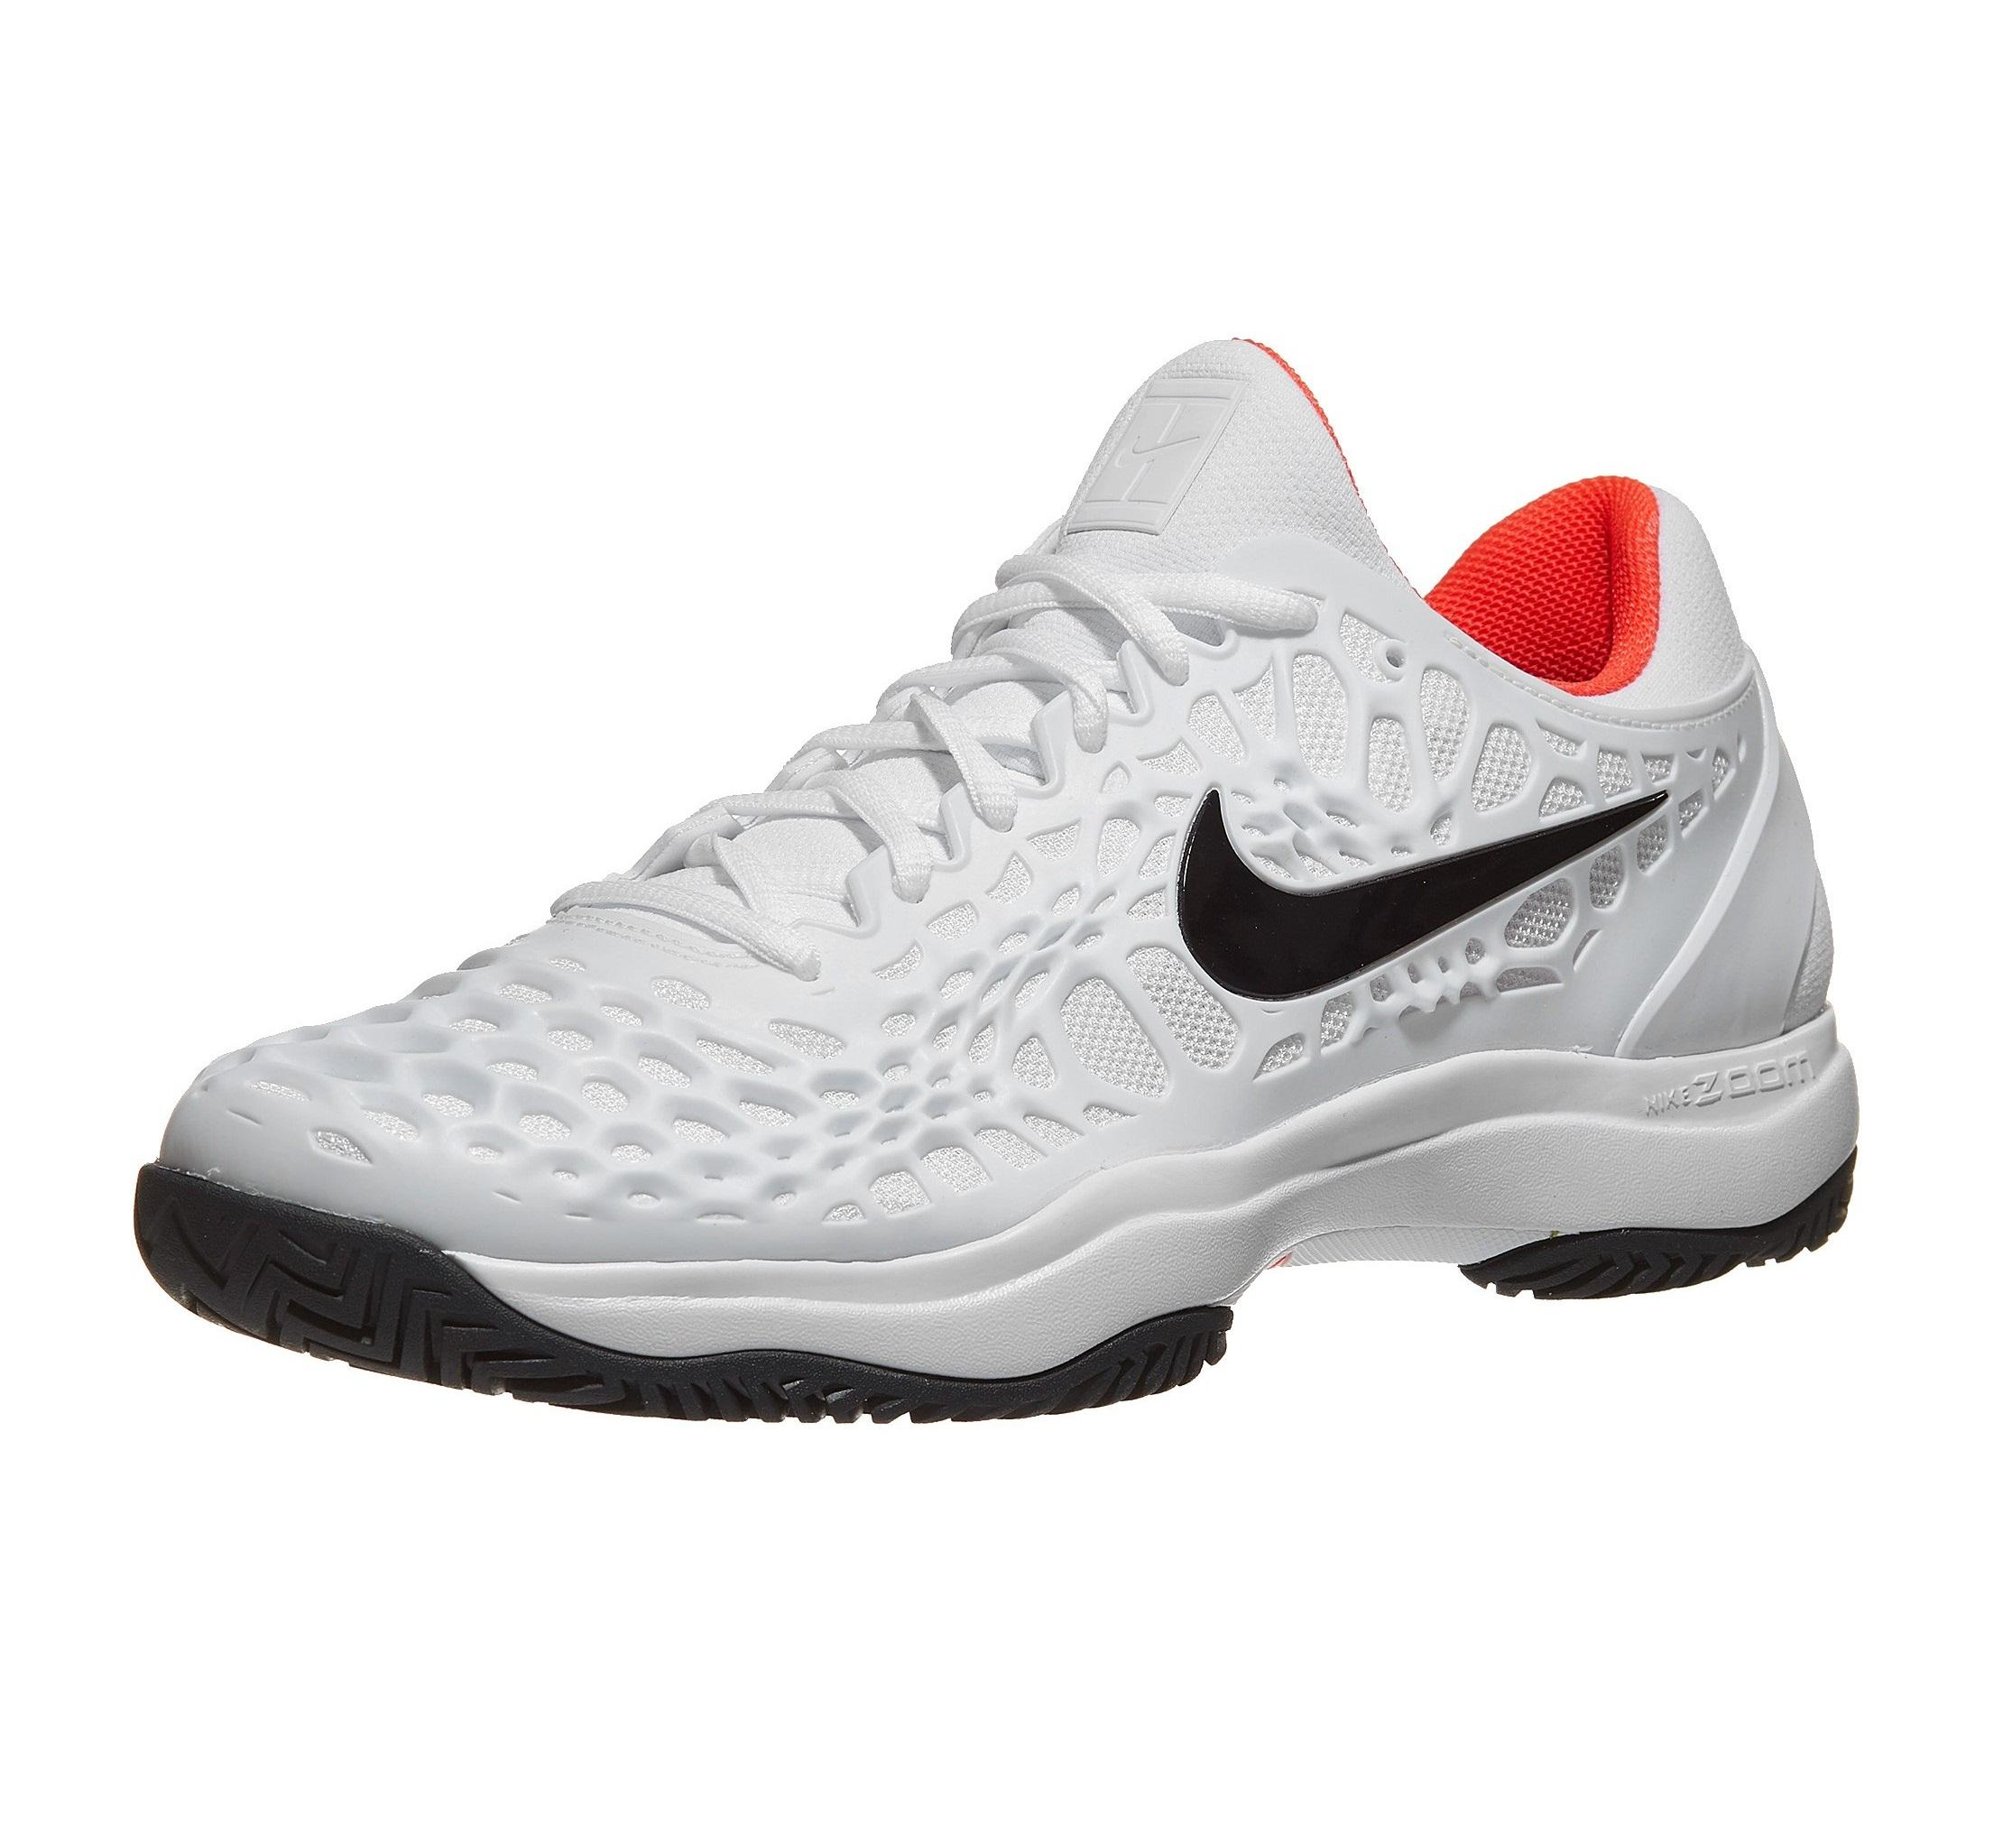 Giầy Tennis Nike Zoom Cage 3 ( Trắng ) | Vietsport